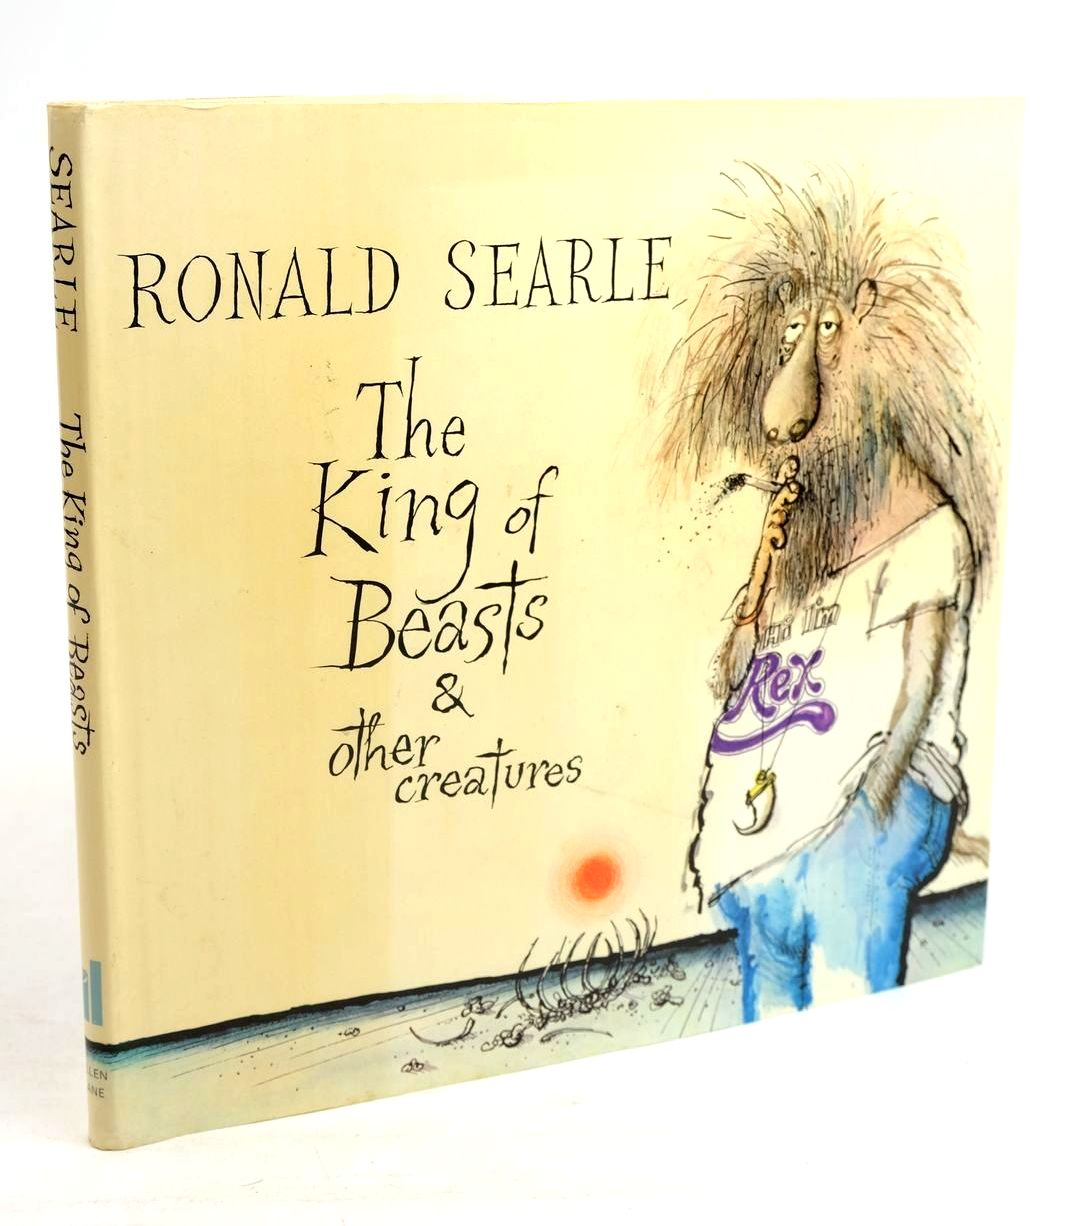 Photo of THE KING OF BEASTS & OTHER CREATURES written by Searle, Ronald illustrated by Searle, Ronald published by Allen Lane (STOCK CODE: 1320426)  for sale by Stella & Rose's Books